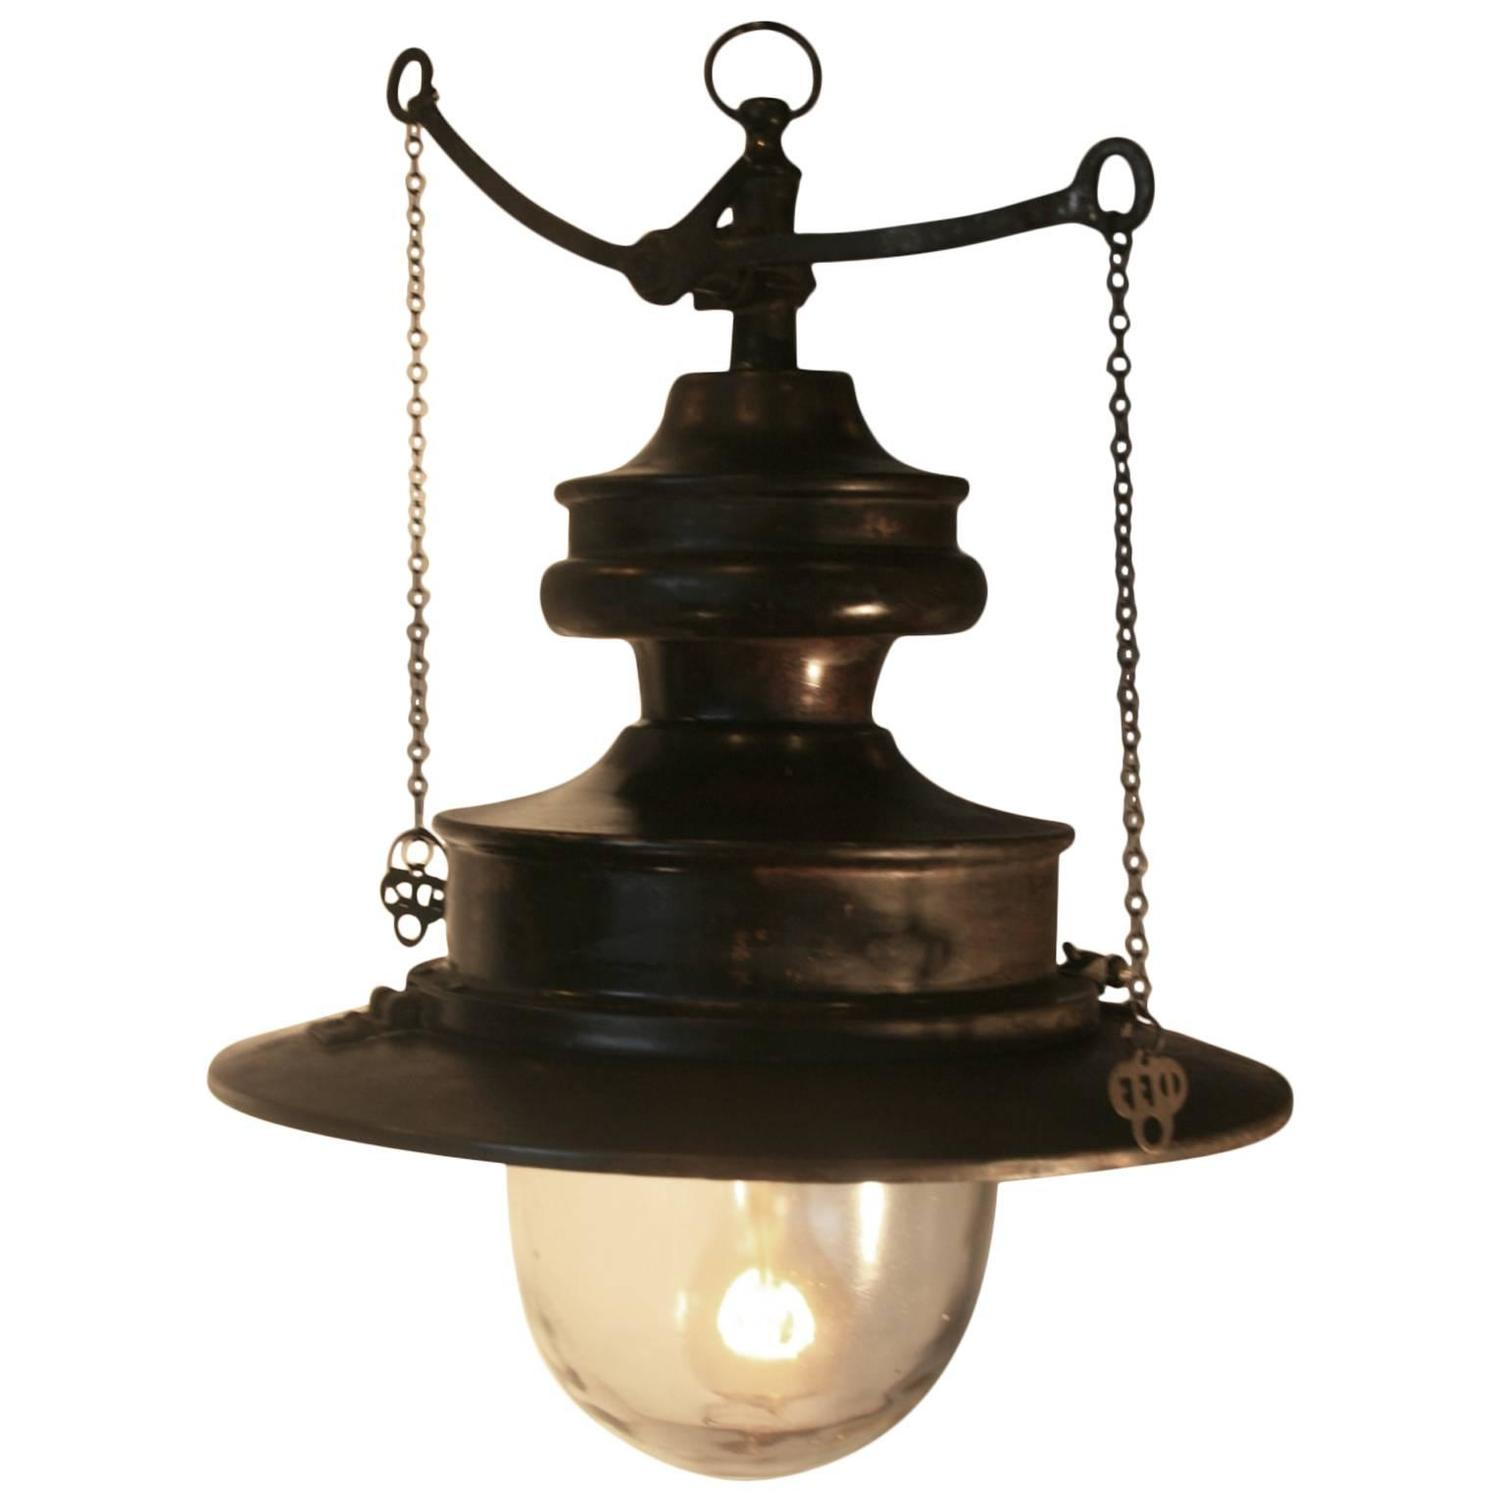 Large And Rare Pre-Electric Industrial Gas Light At 1stdibs